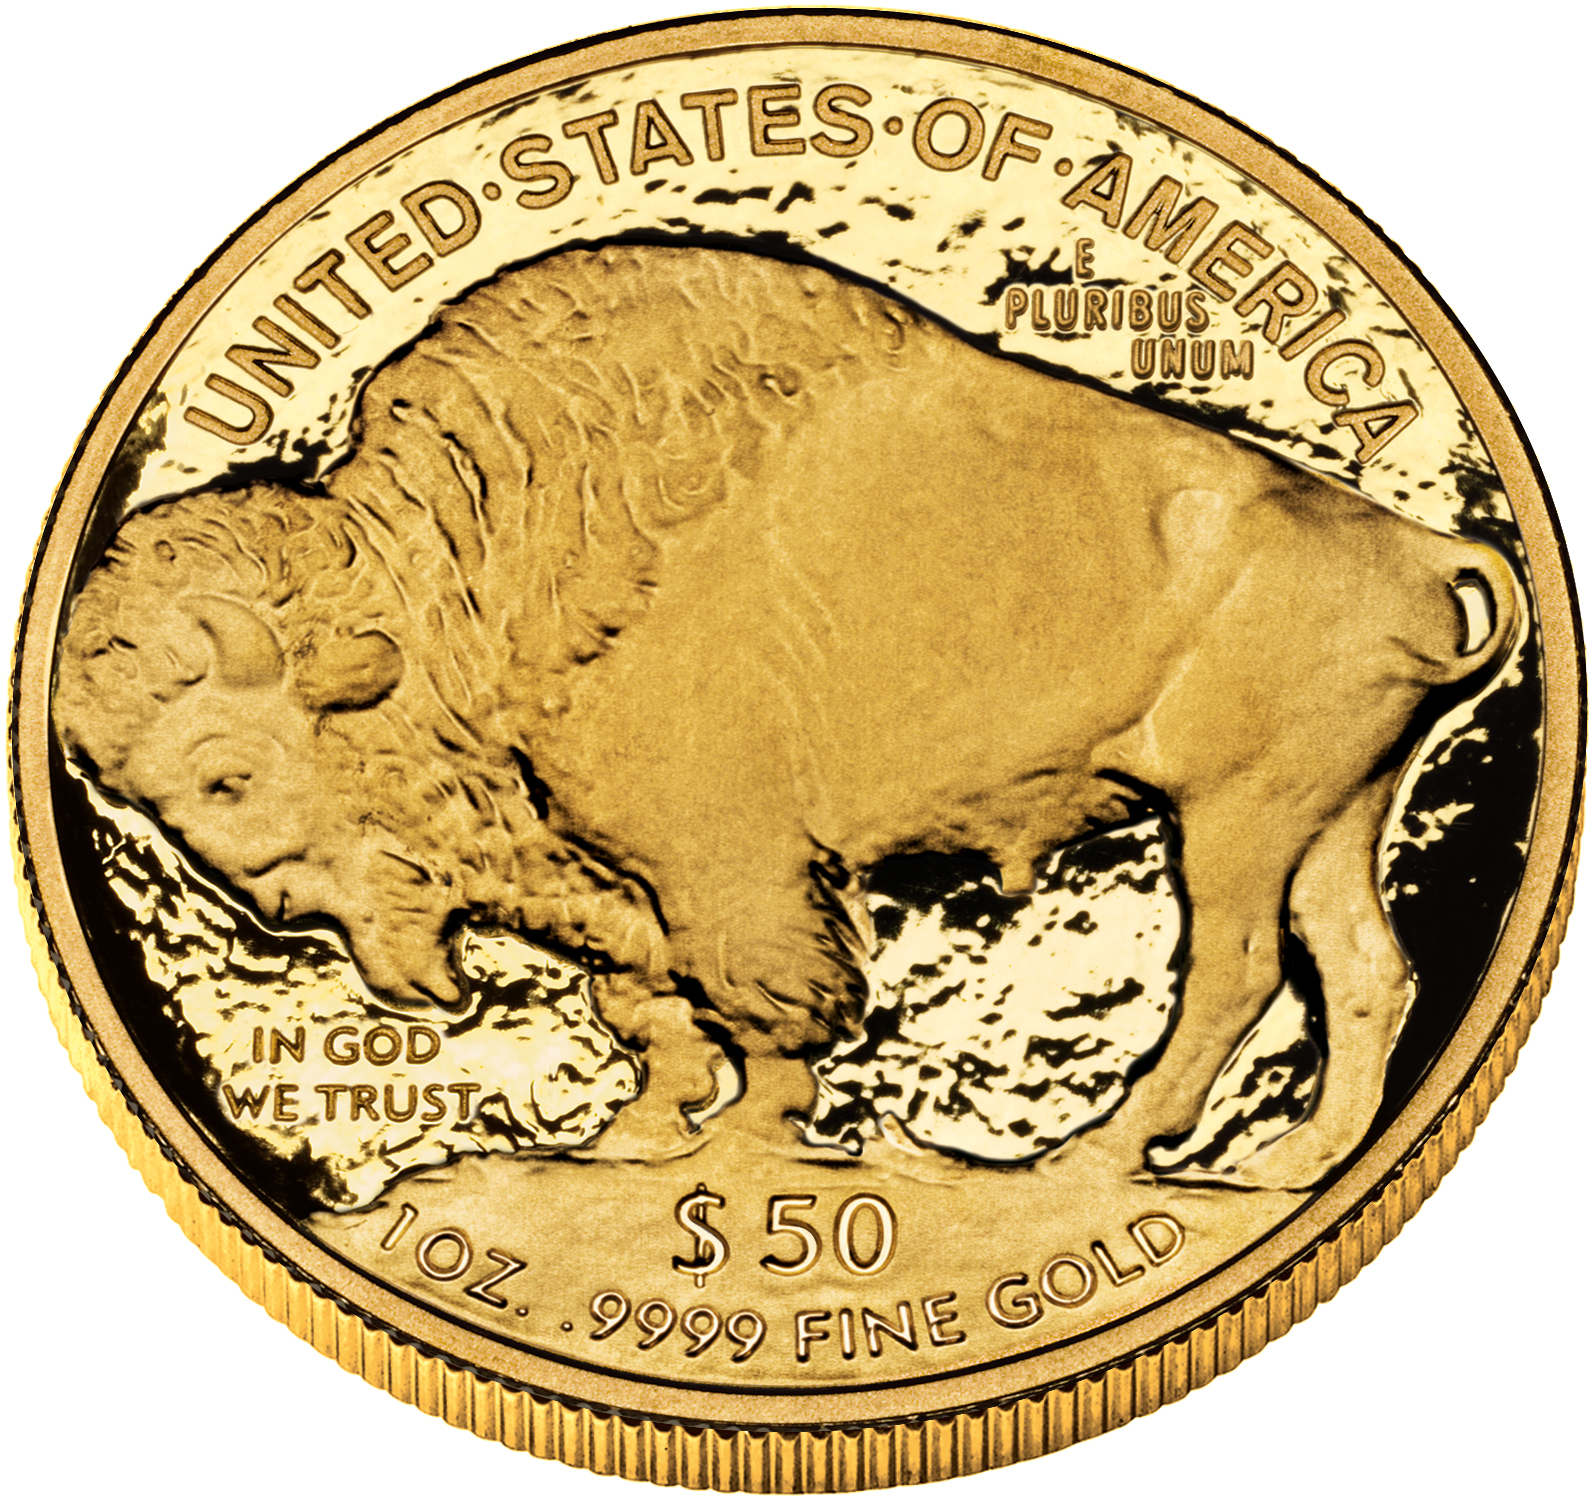 2010 American Buffalo Gold Proof Coin, Reverse (2009 version shown) - Click to Enlarge